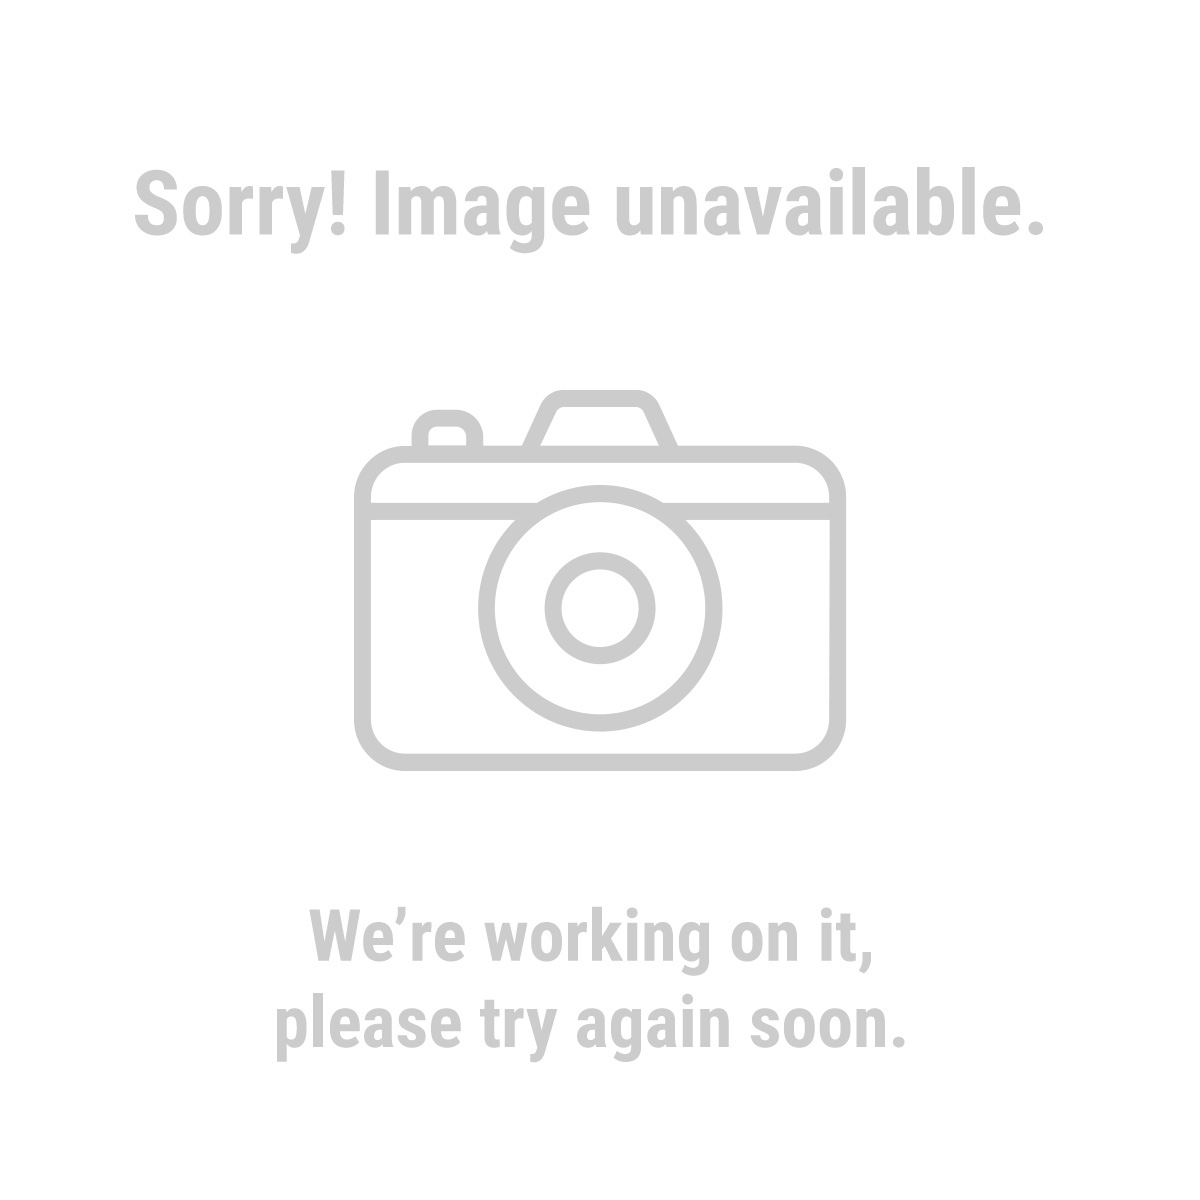 image_26566 3 gallon air compressor 1 3 hp, 100 psi, oilless  at panicattacktreatment.co